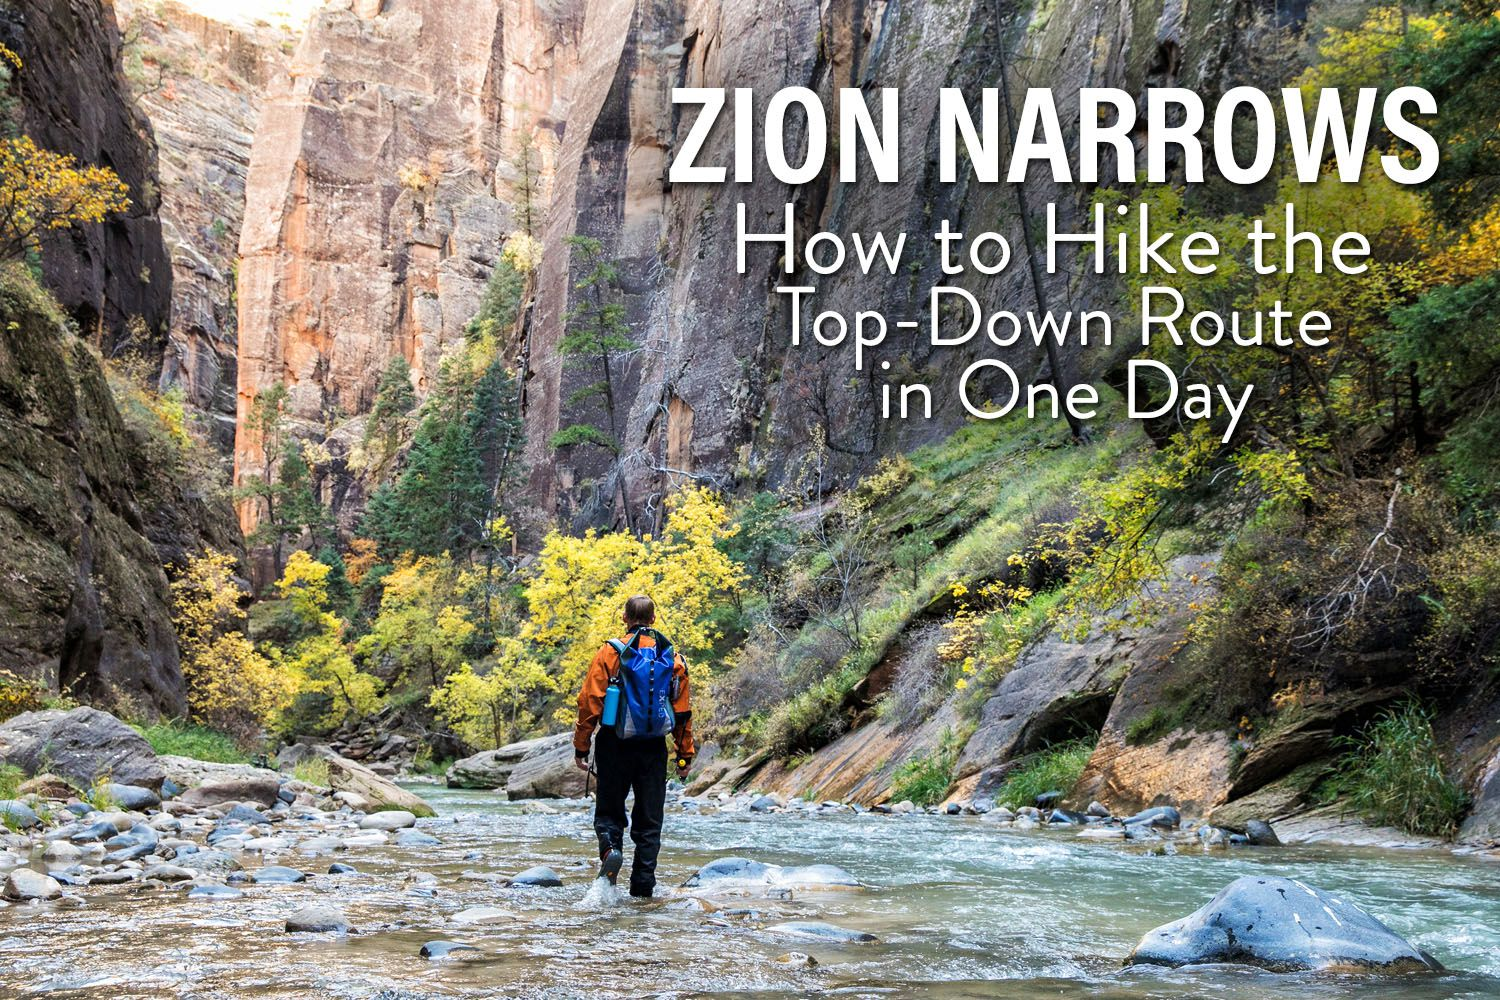 Zion Narrows in One Day